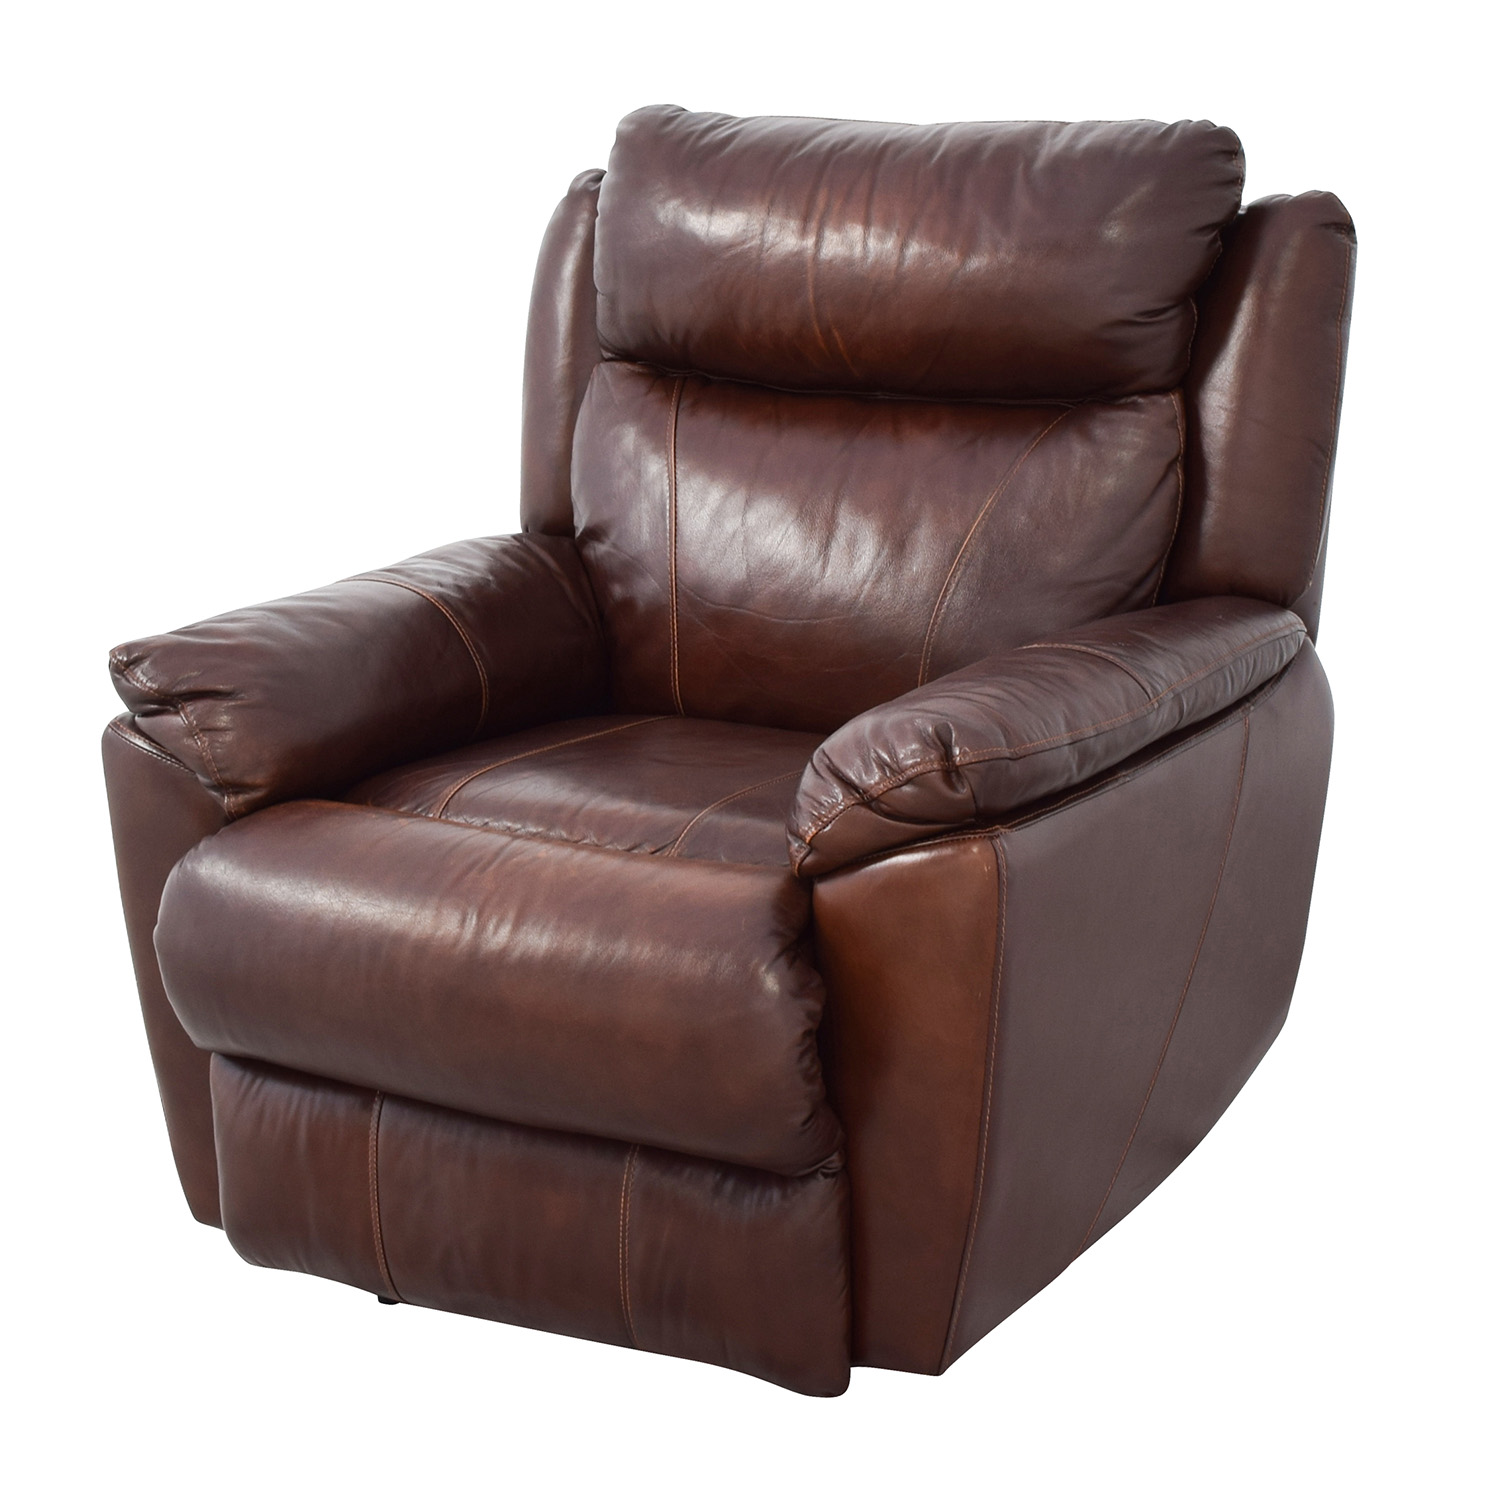 macy chairs recliners hanging chair outdoor 61 off 39s brown leather power recliner